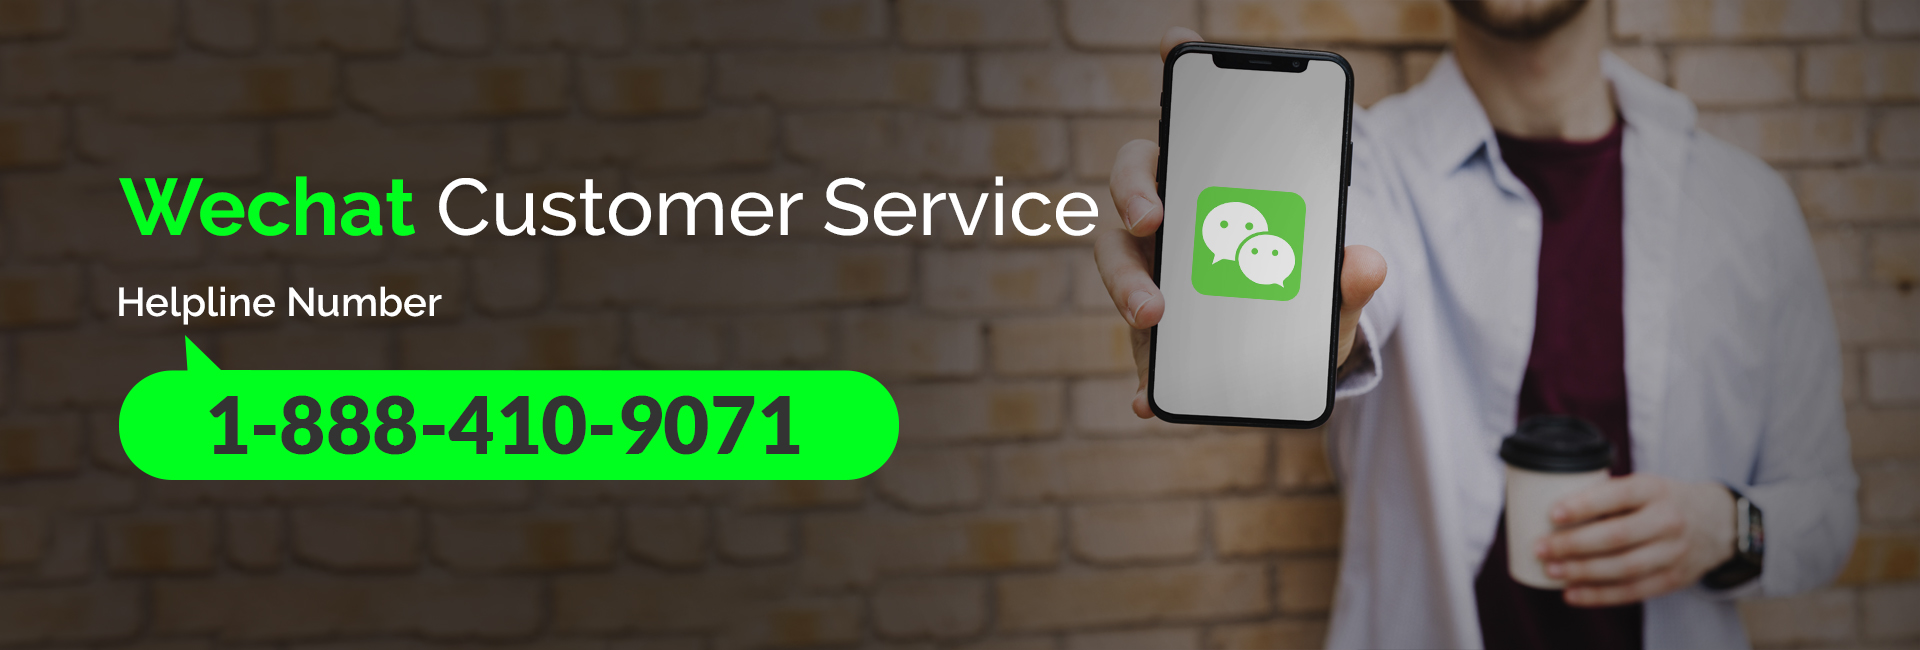 wechat-support Number 1-888-410-9071